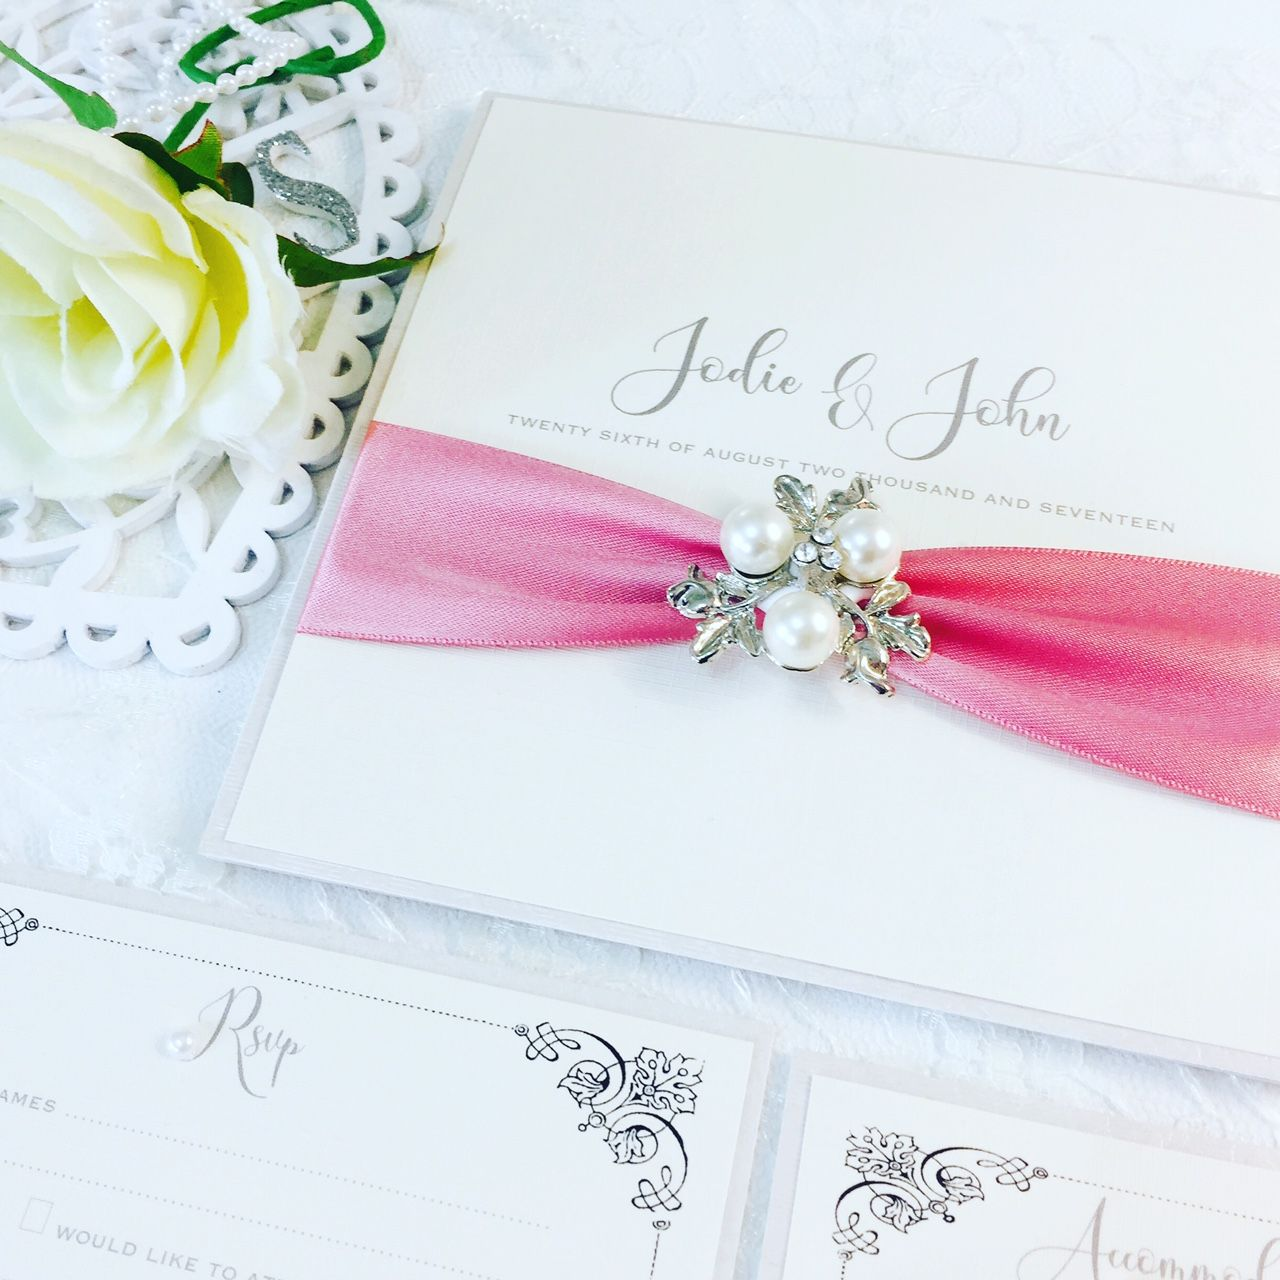 Elegant wedding invitation cards with pearl brooch